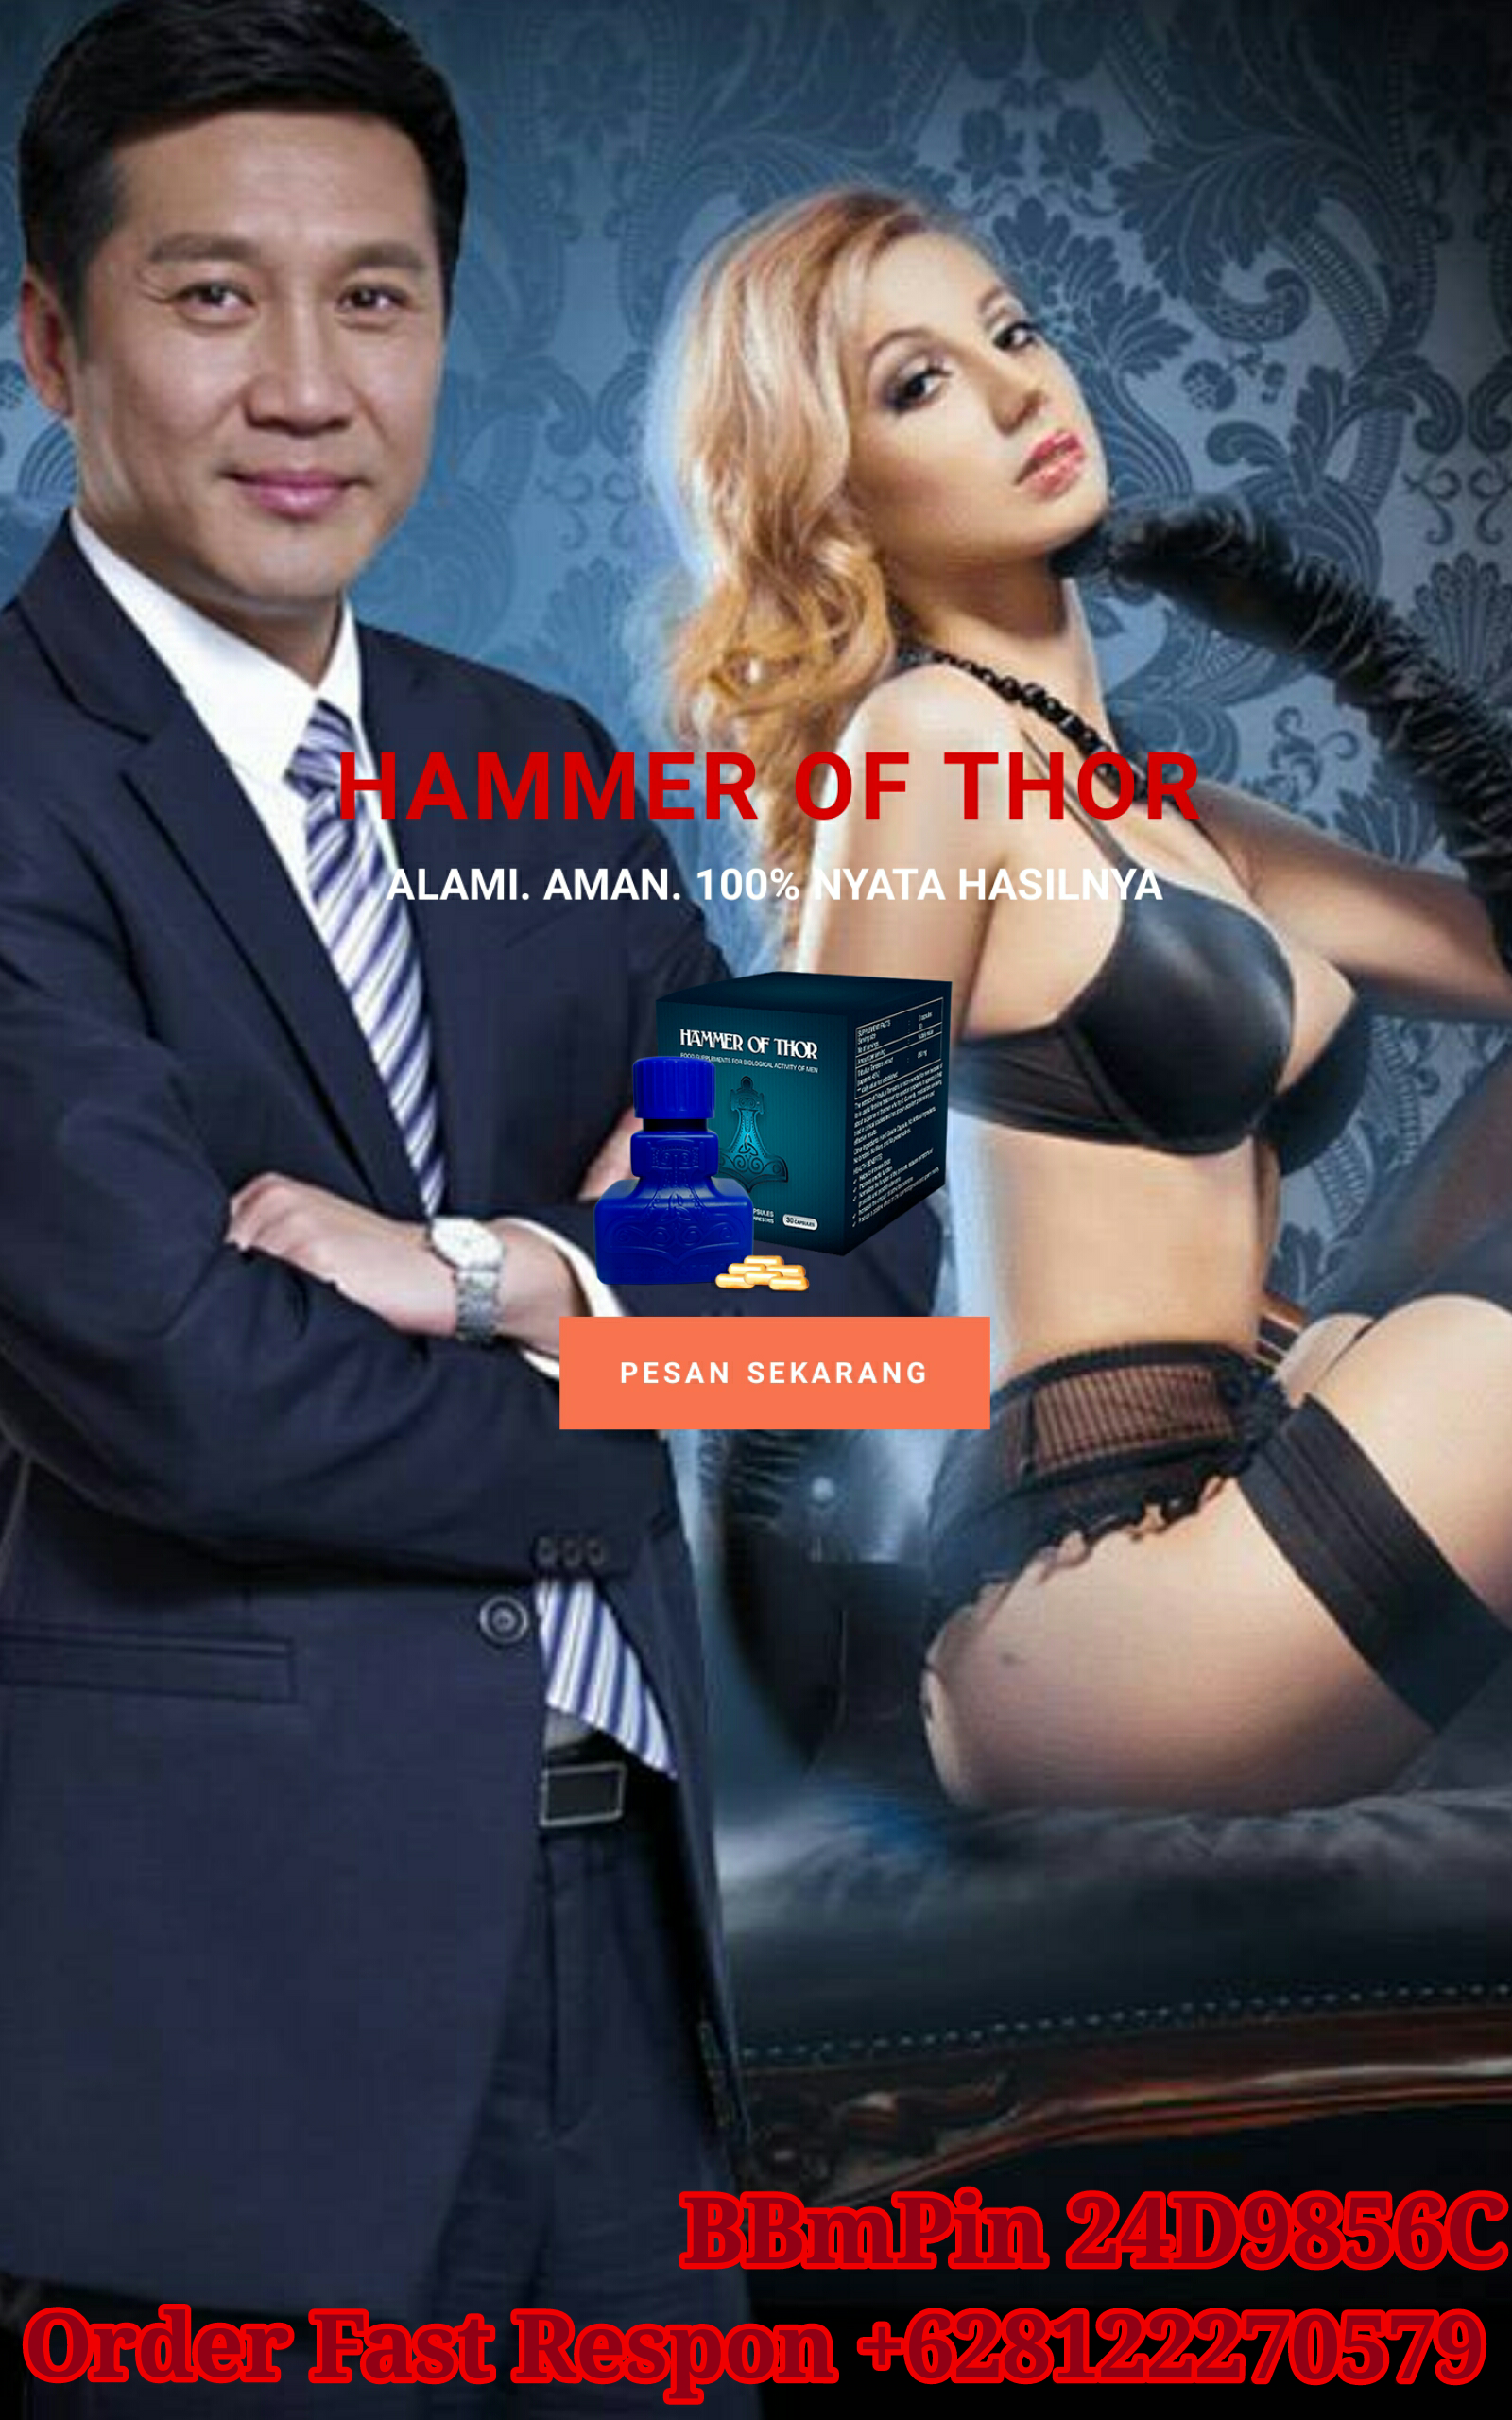 thorhammer_1png